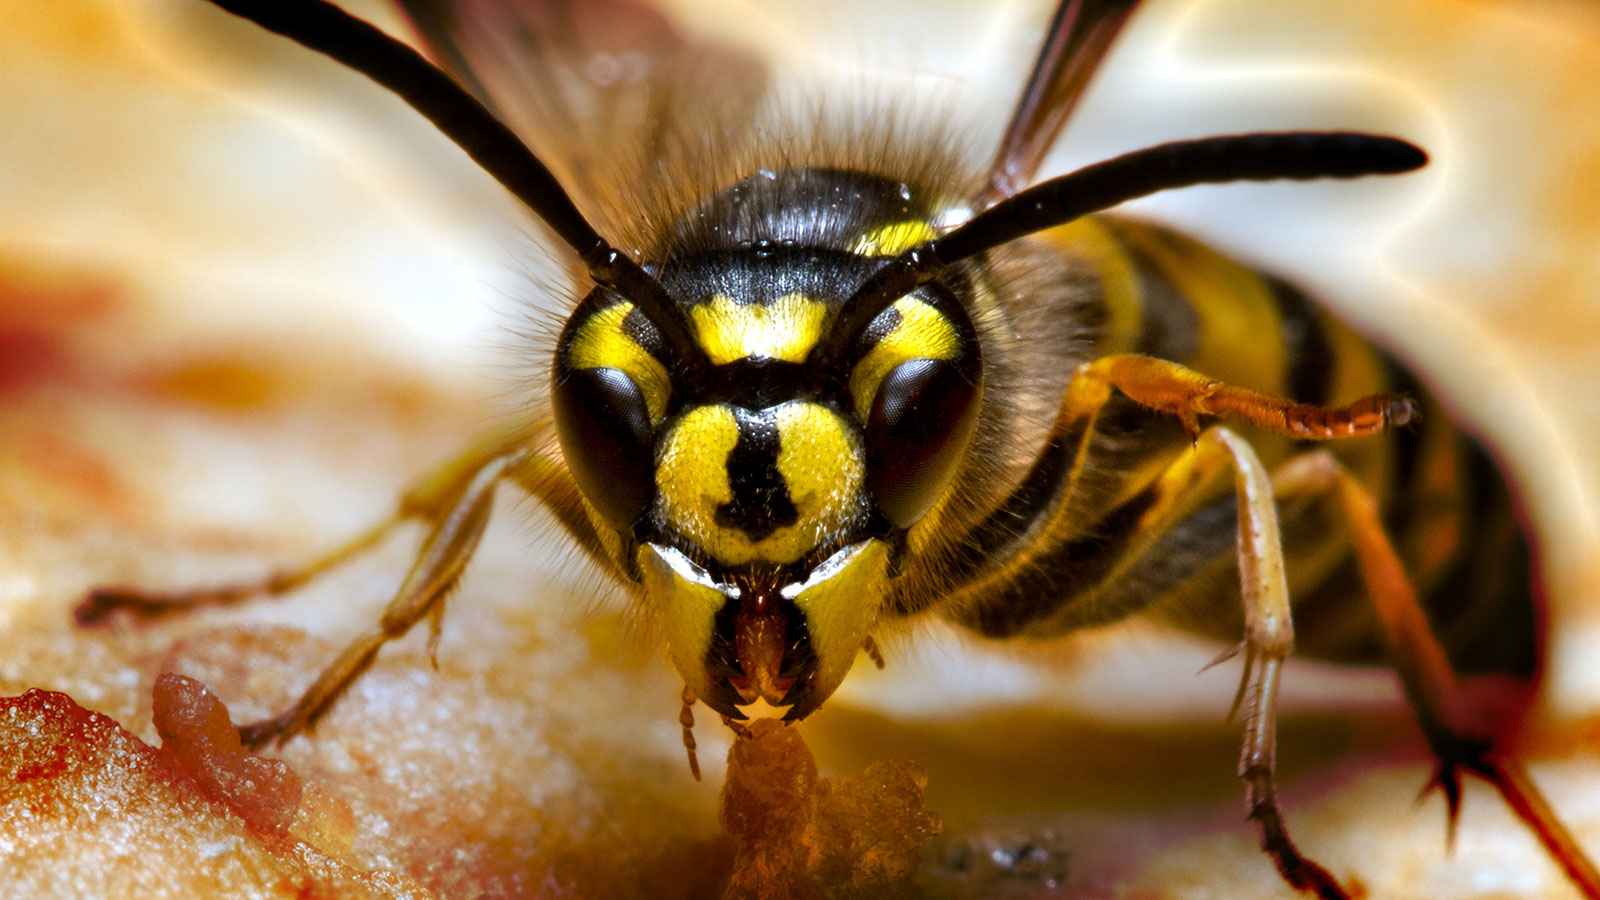 What's the Difference Between a Hornet and a Wasp